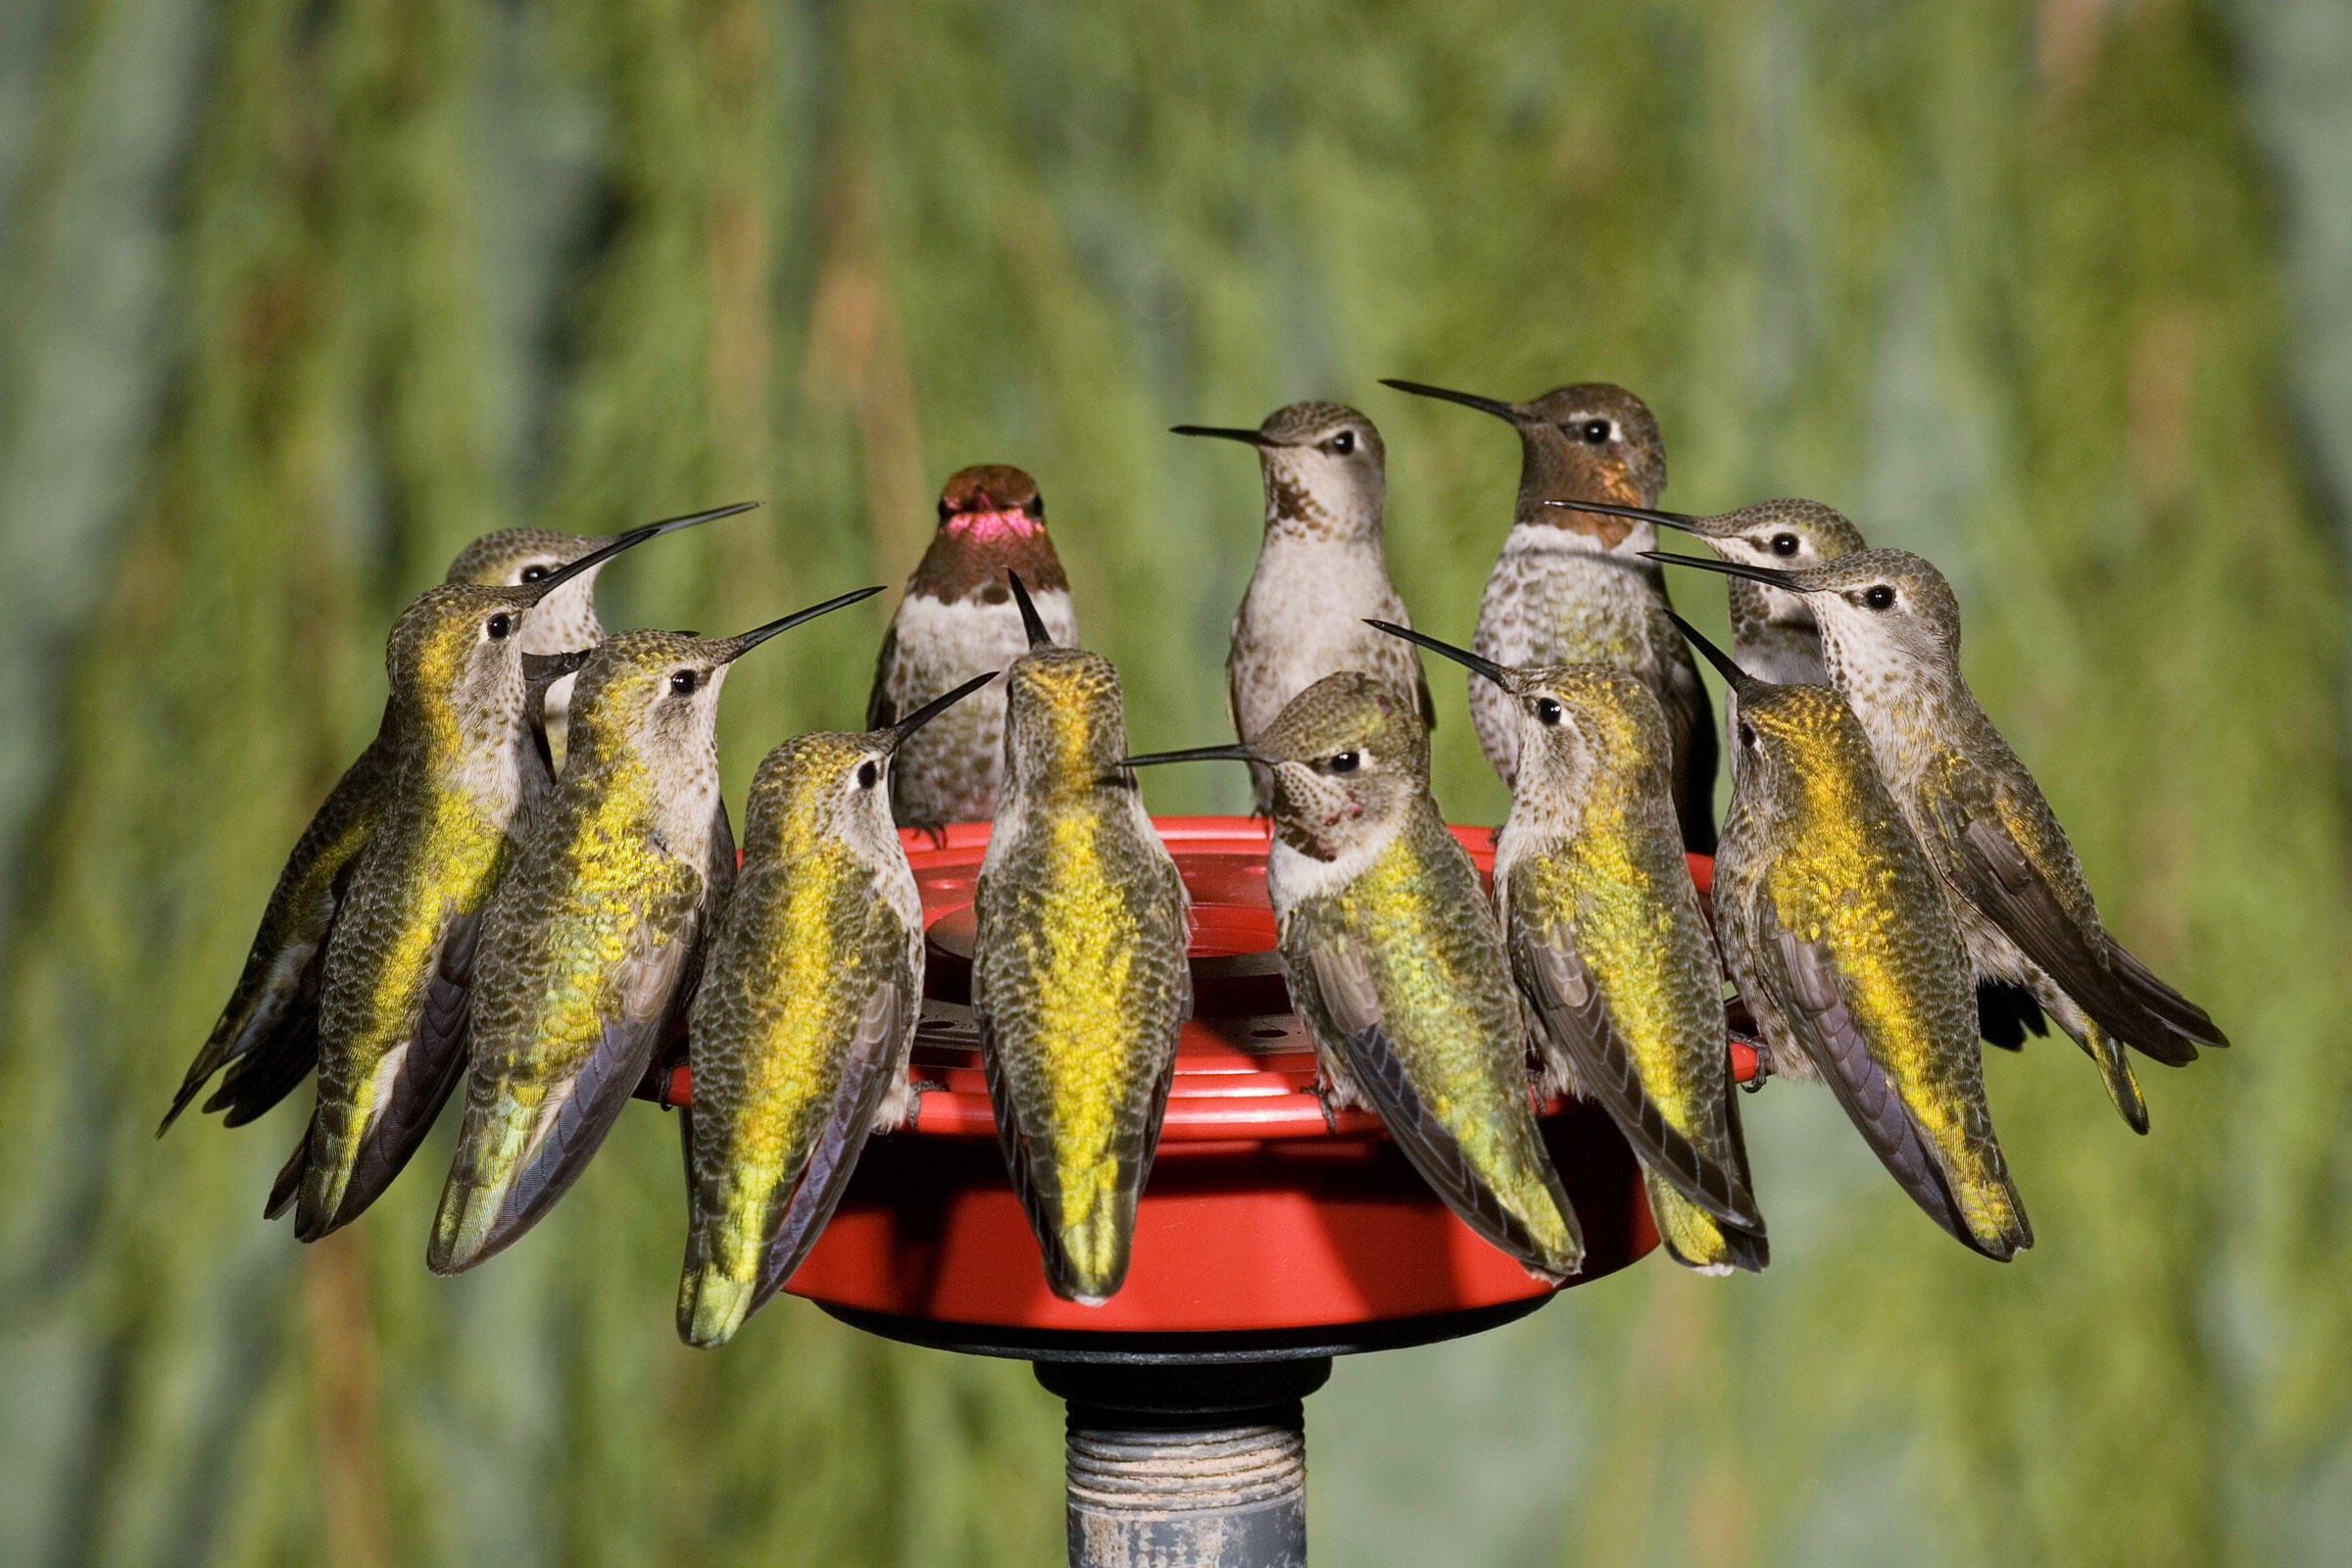 Male and female Anna's Hummingbirds crowd a feeder to refuel. Charles Melton/Alamy